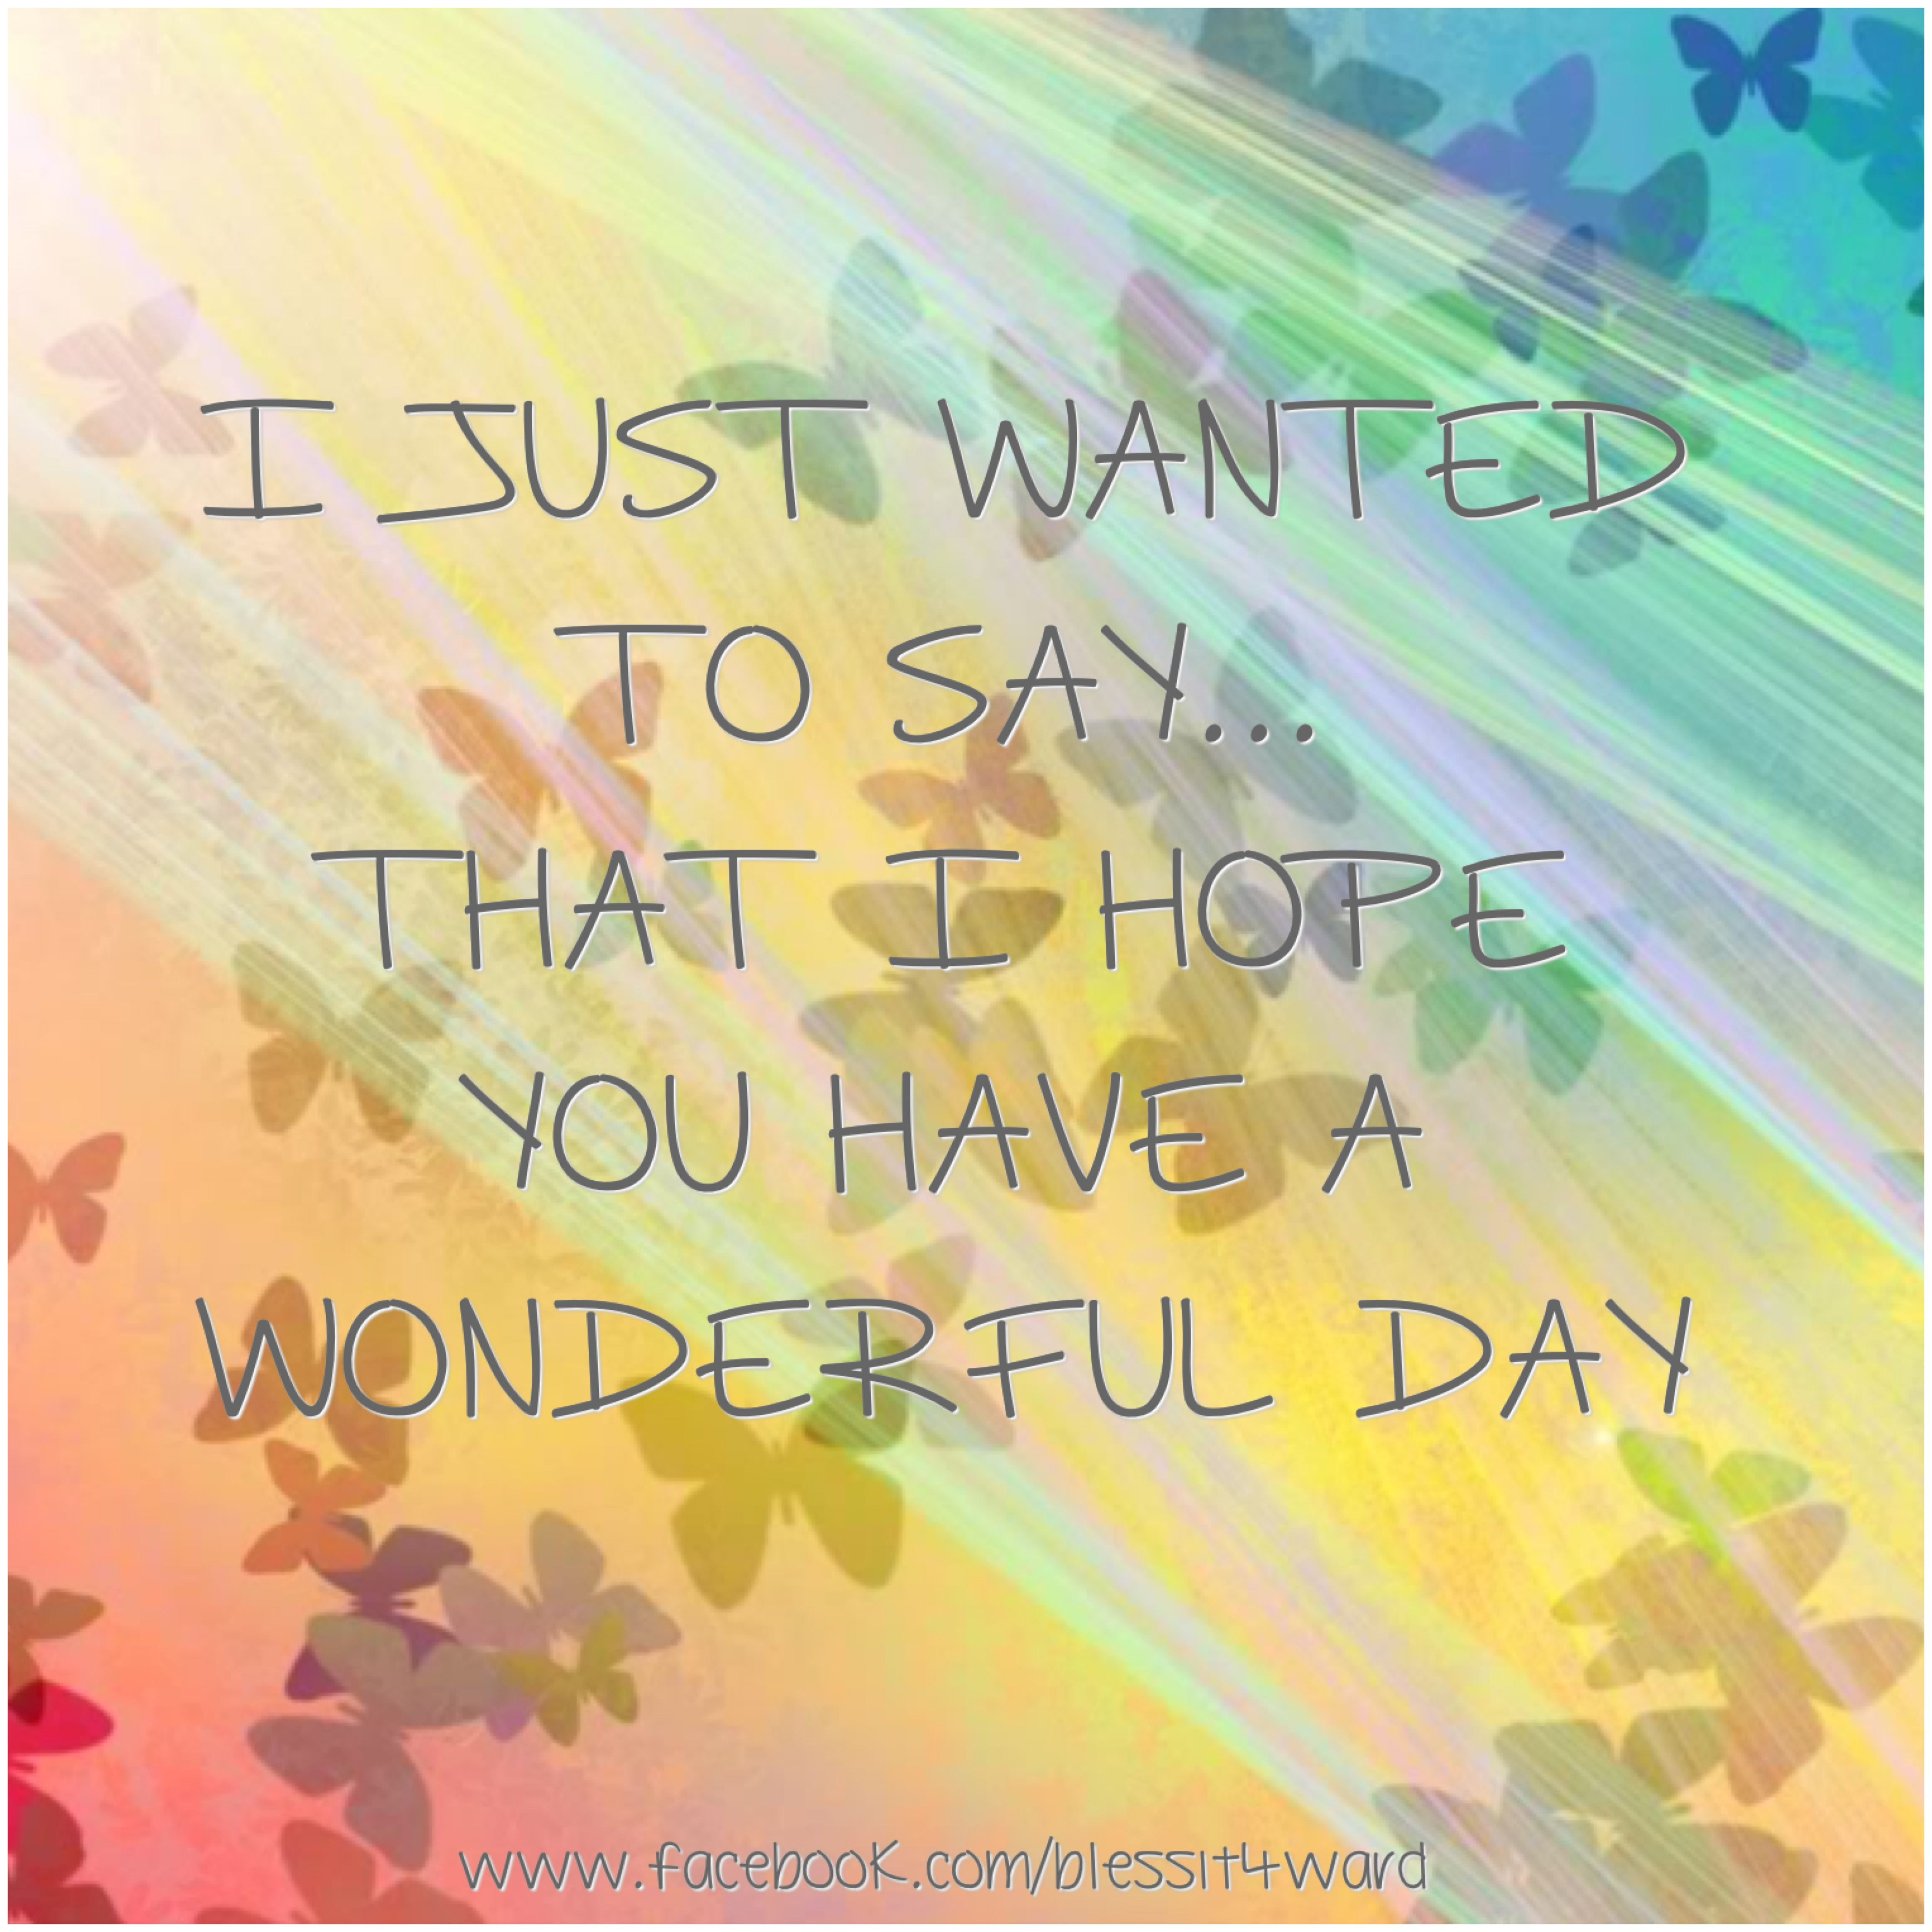 I Just Wanted To Say That I Hope You Have A Wonderful Day Good